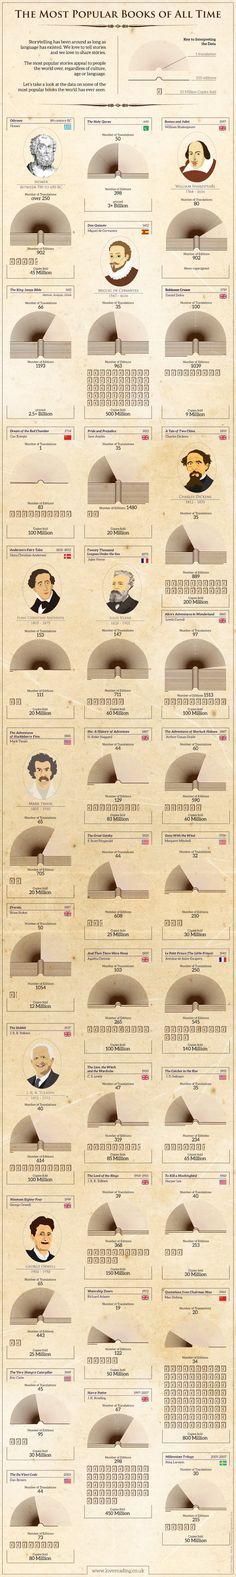 A nice #infographic that shows most popular #books of all time.   I've added links to free ebook downloads - almost half of these books are classics in public domain.